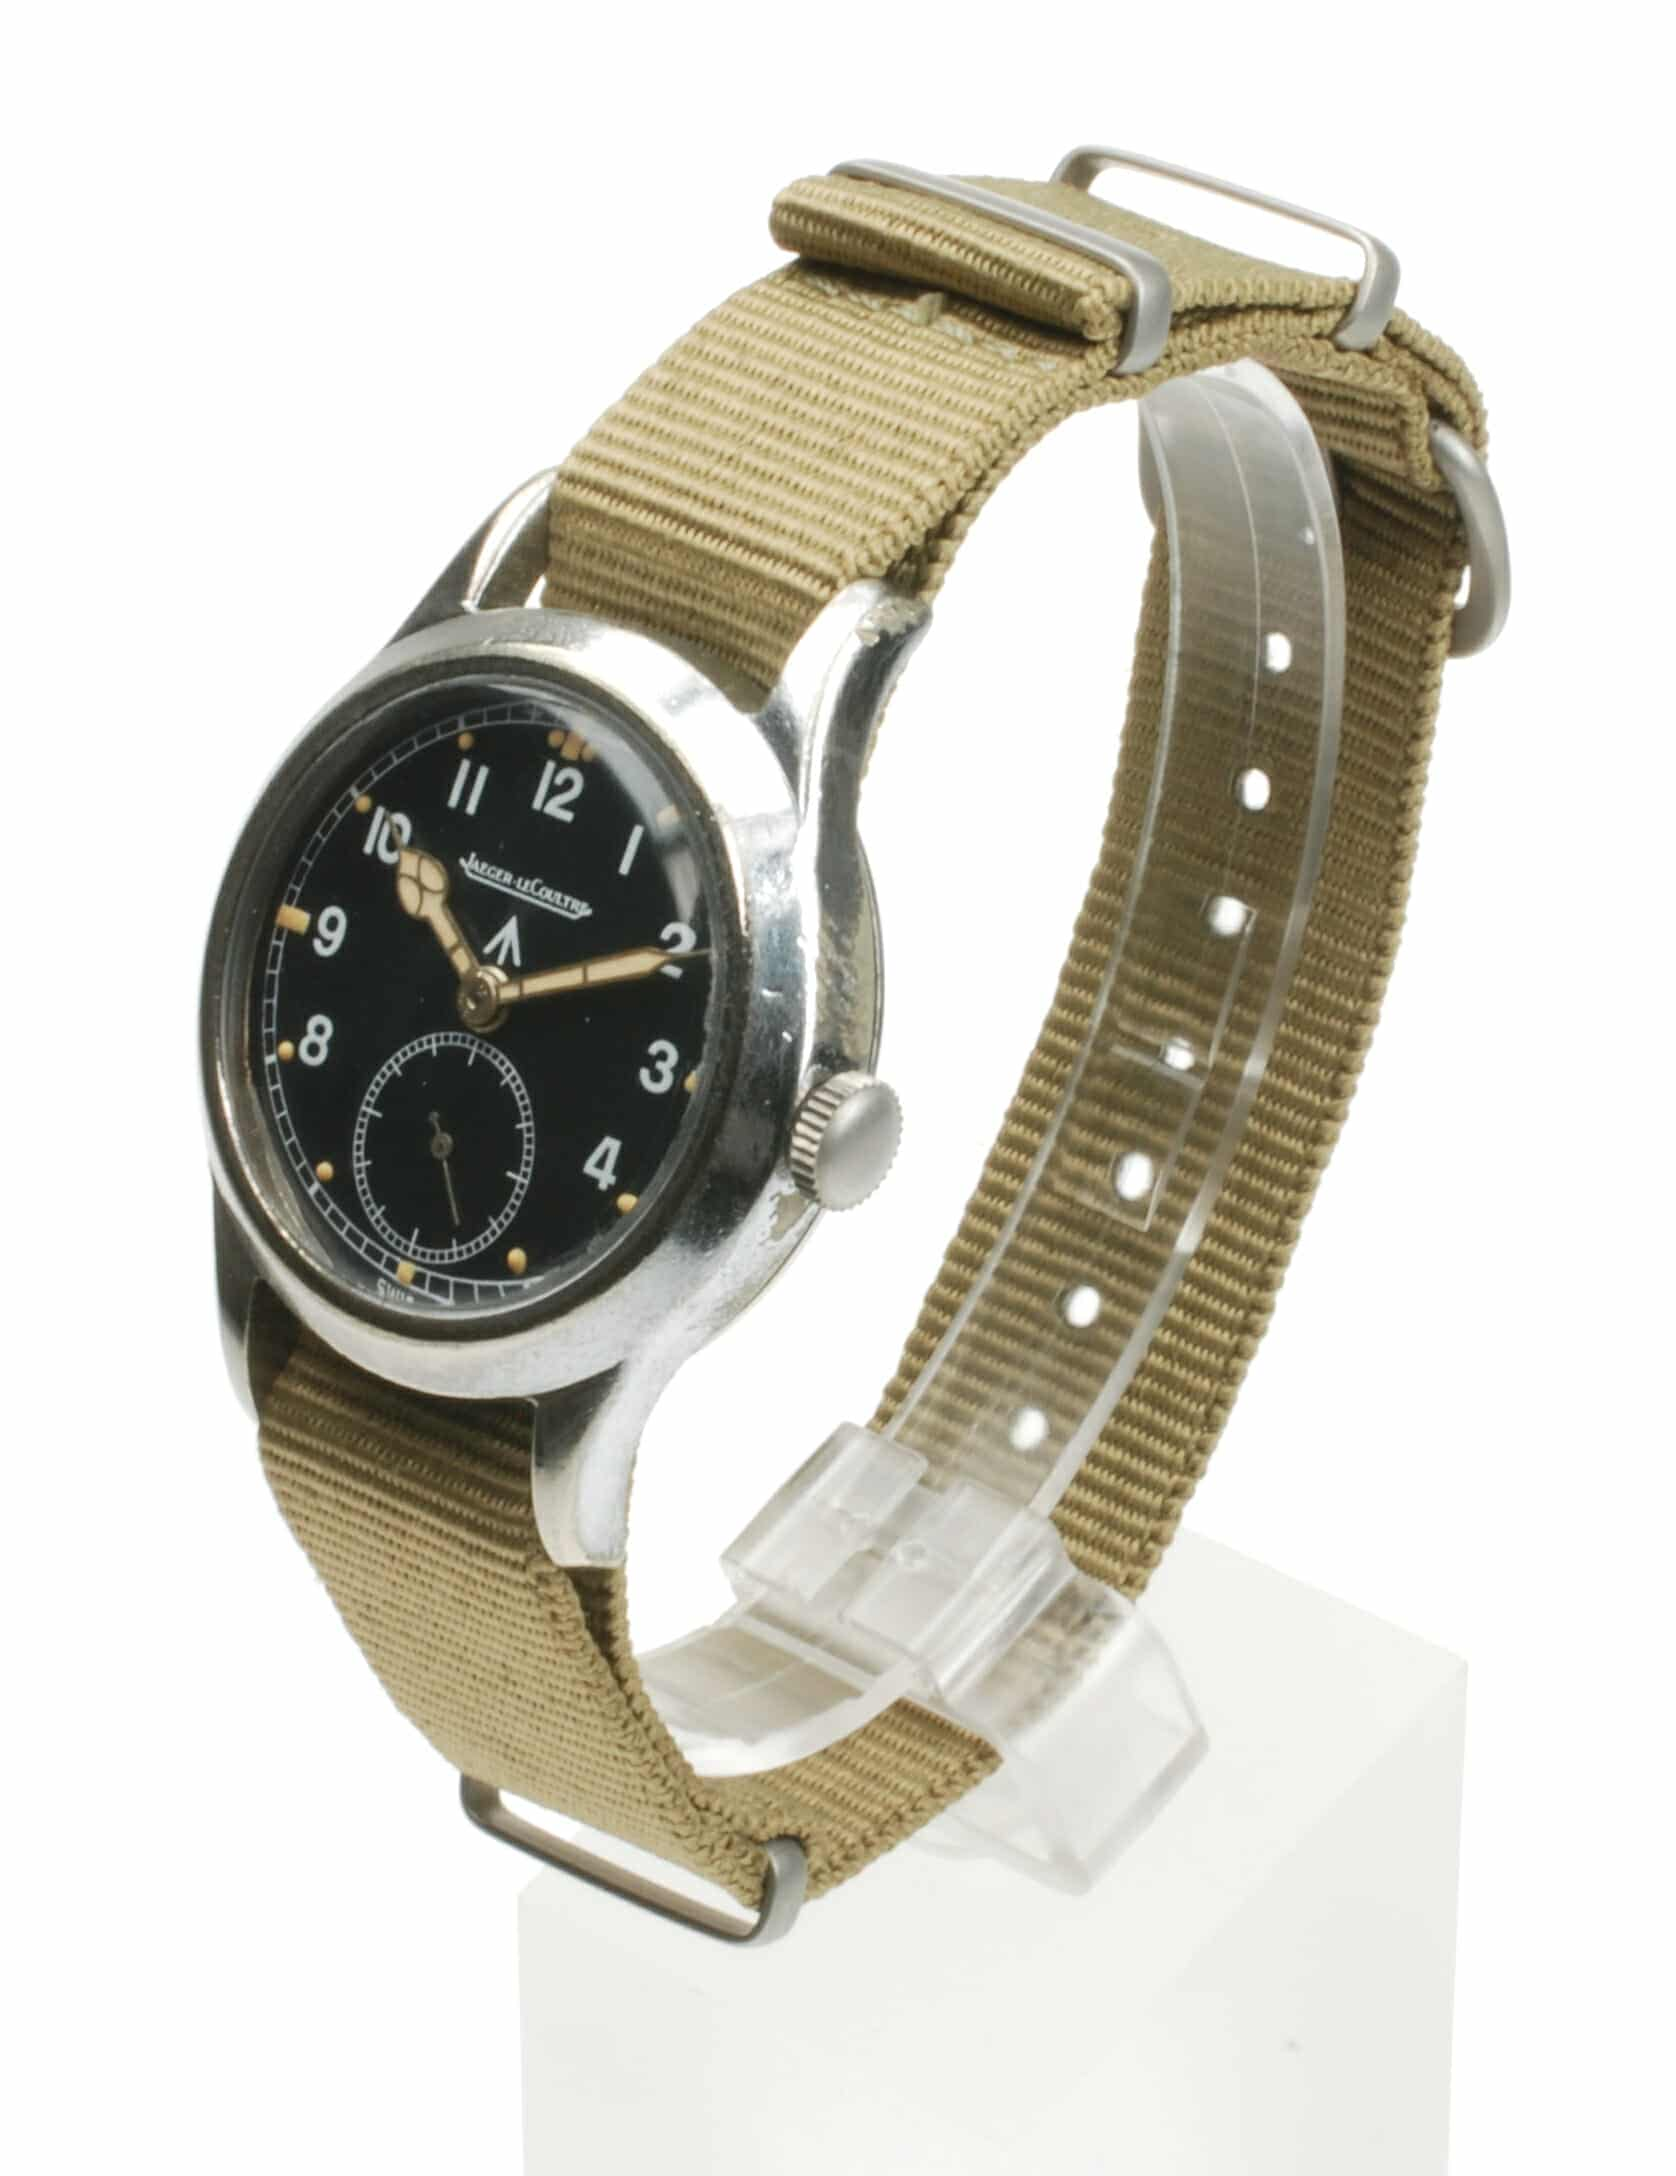 Jaeger LeCoultre British Army Issued Watch WW2 F11065 Pre-Owned Watch